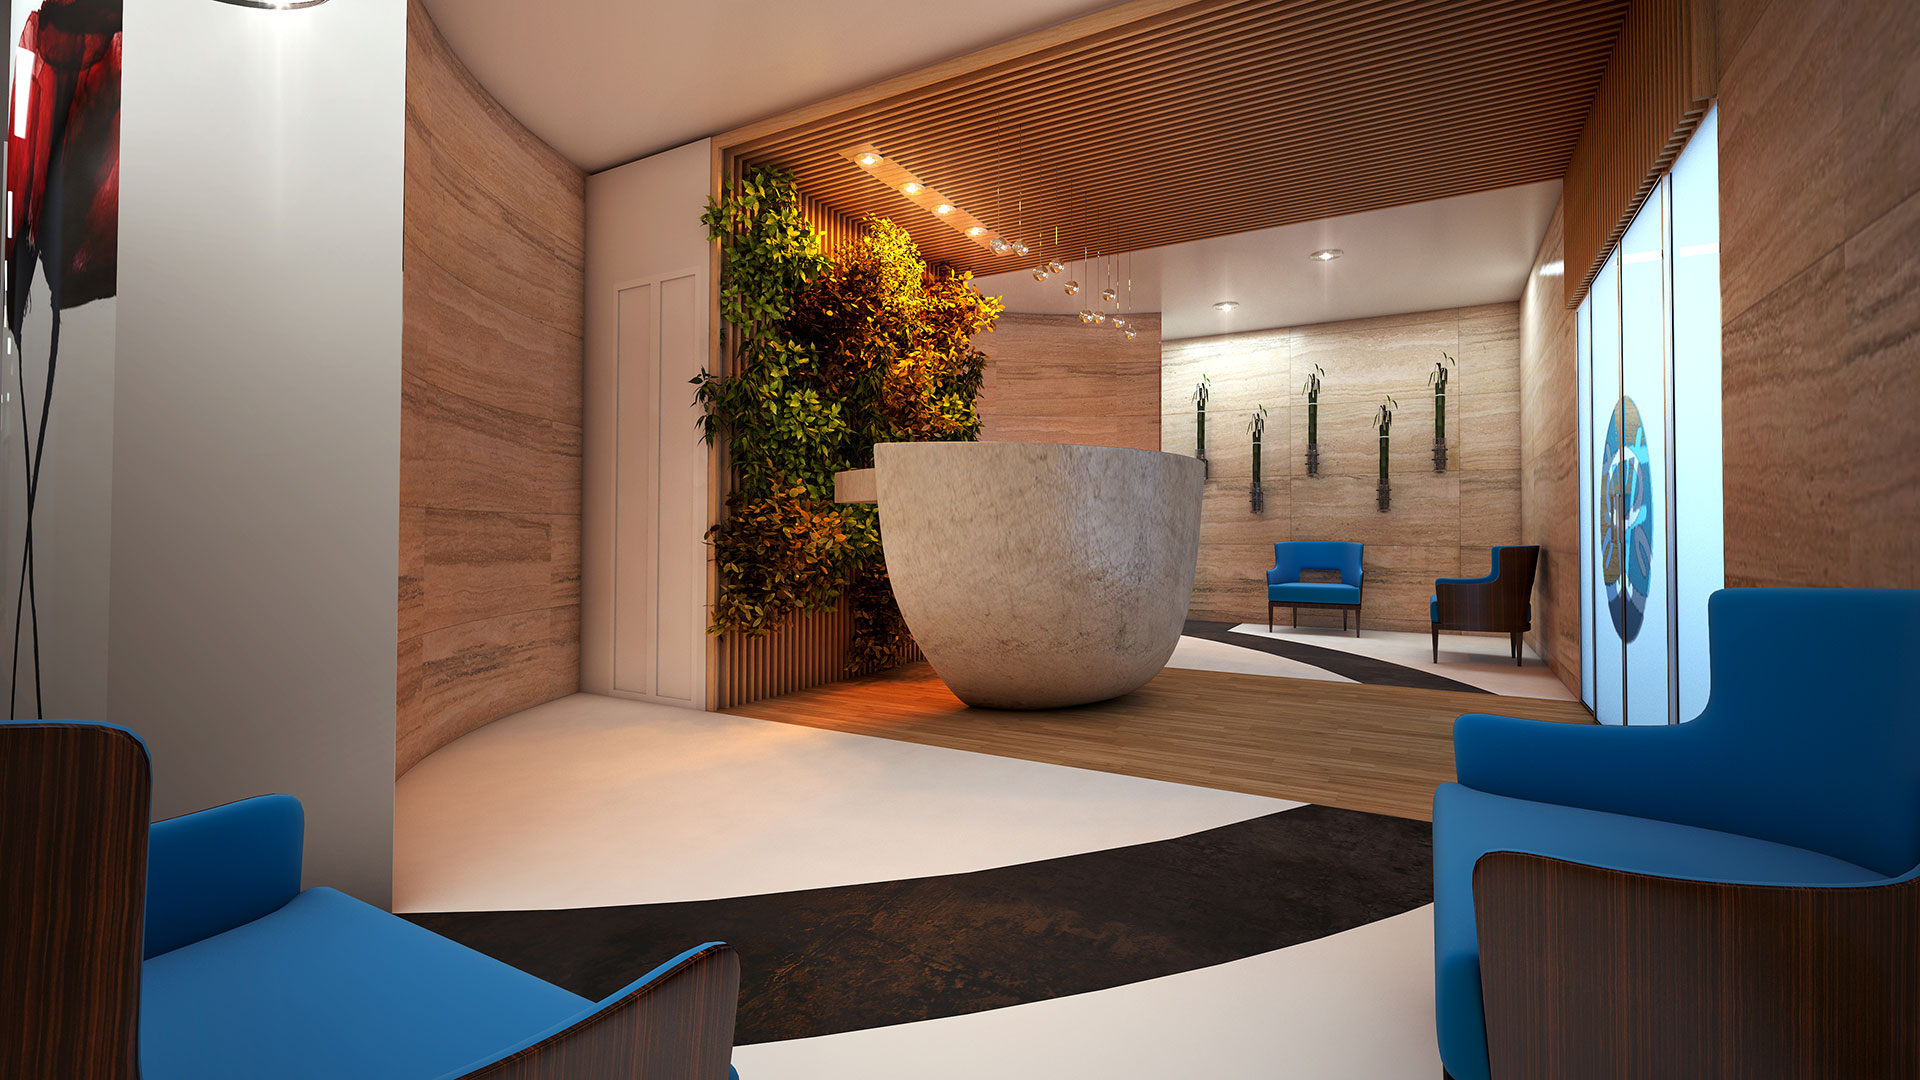 SilverFit Whole Health Studios Lobby Render